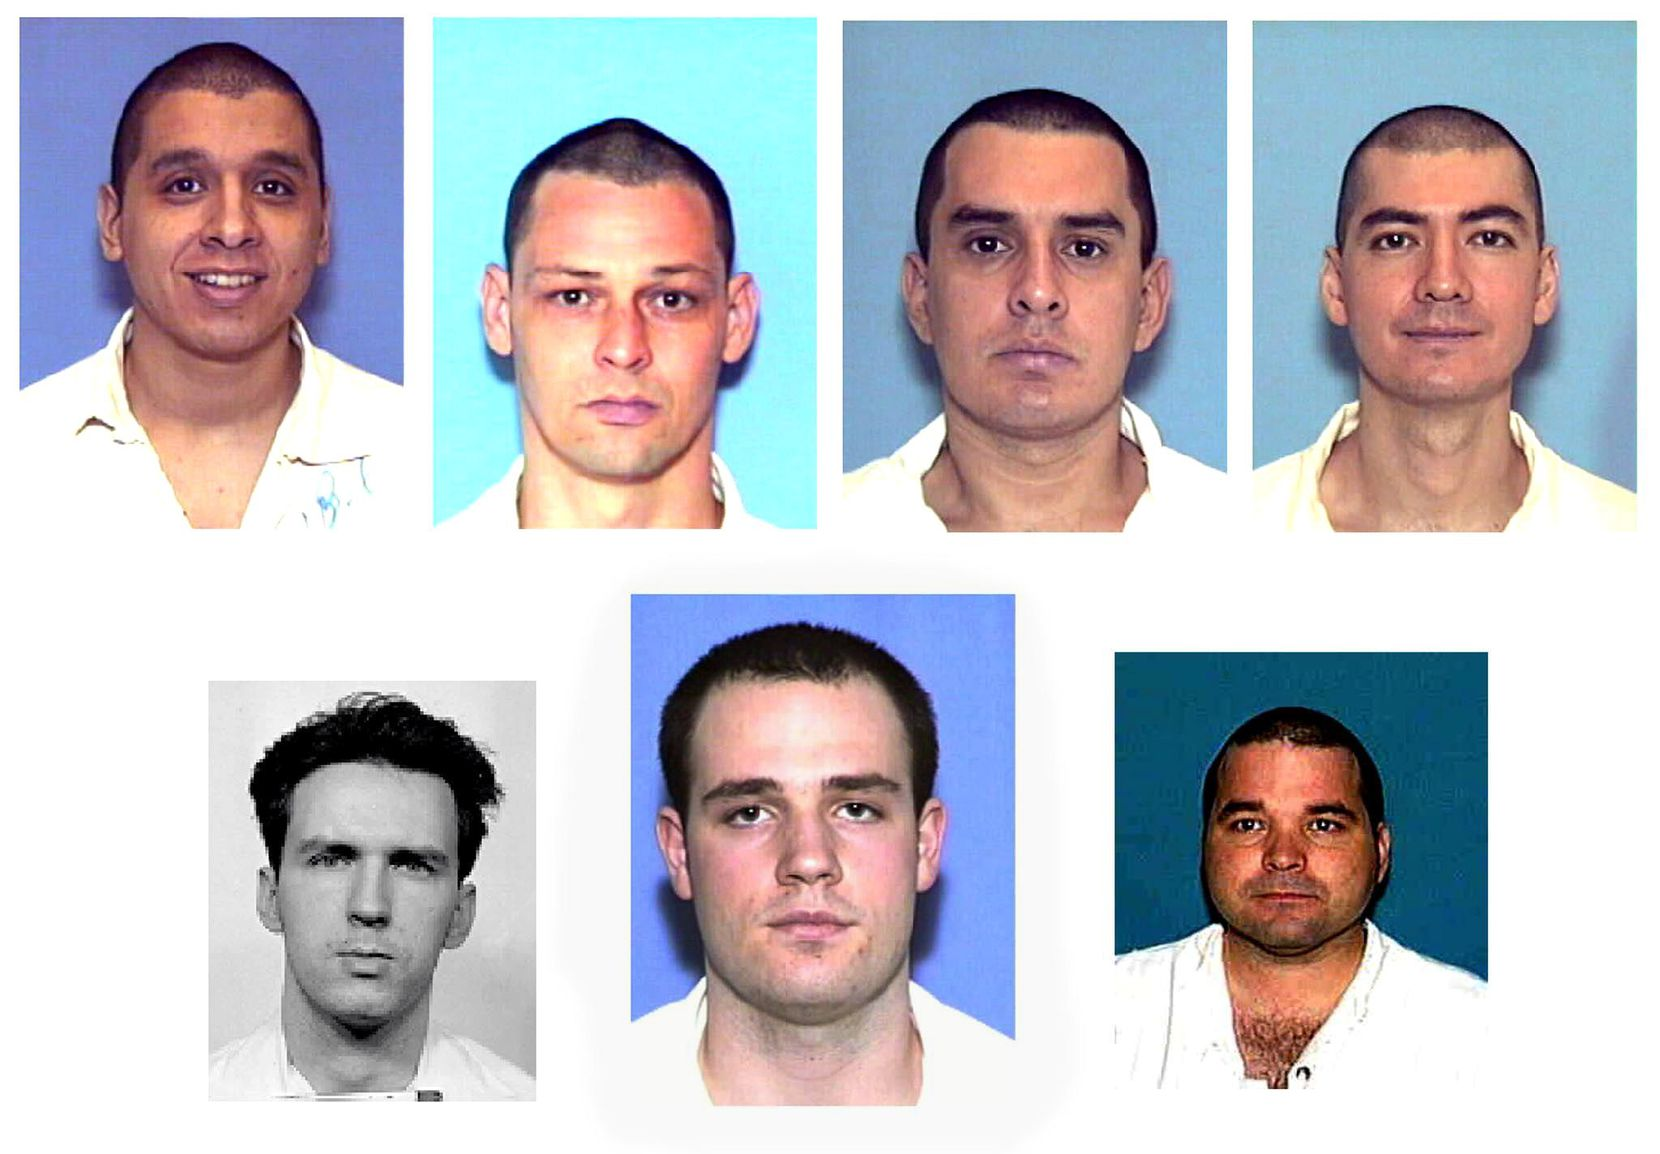 Six members of the Texas Seven were sentenced to death in the Dec. 24, 2000, shooting of Irving police Officer Aubrey Hawkins. From top left, Joseph Garcia, Donald Newbury, George Rivas, Larry Harper. From bottom left, Patrick Murphy, Randy Halprin and Michael Rodriguez.